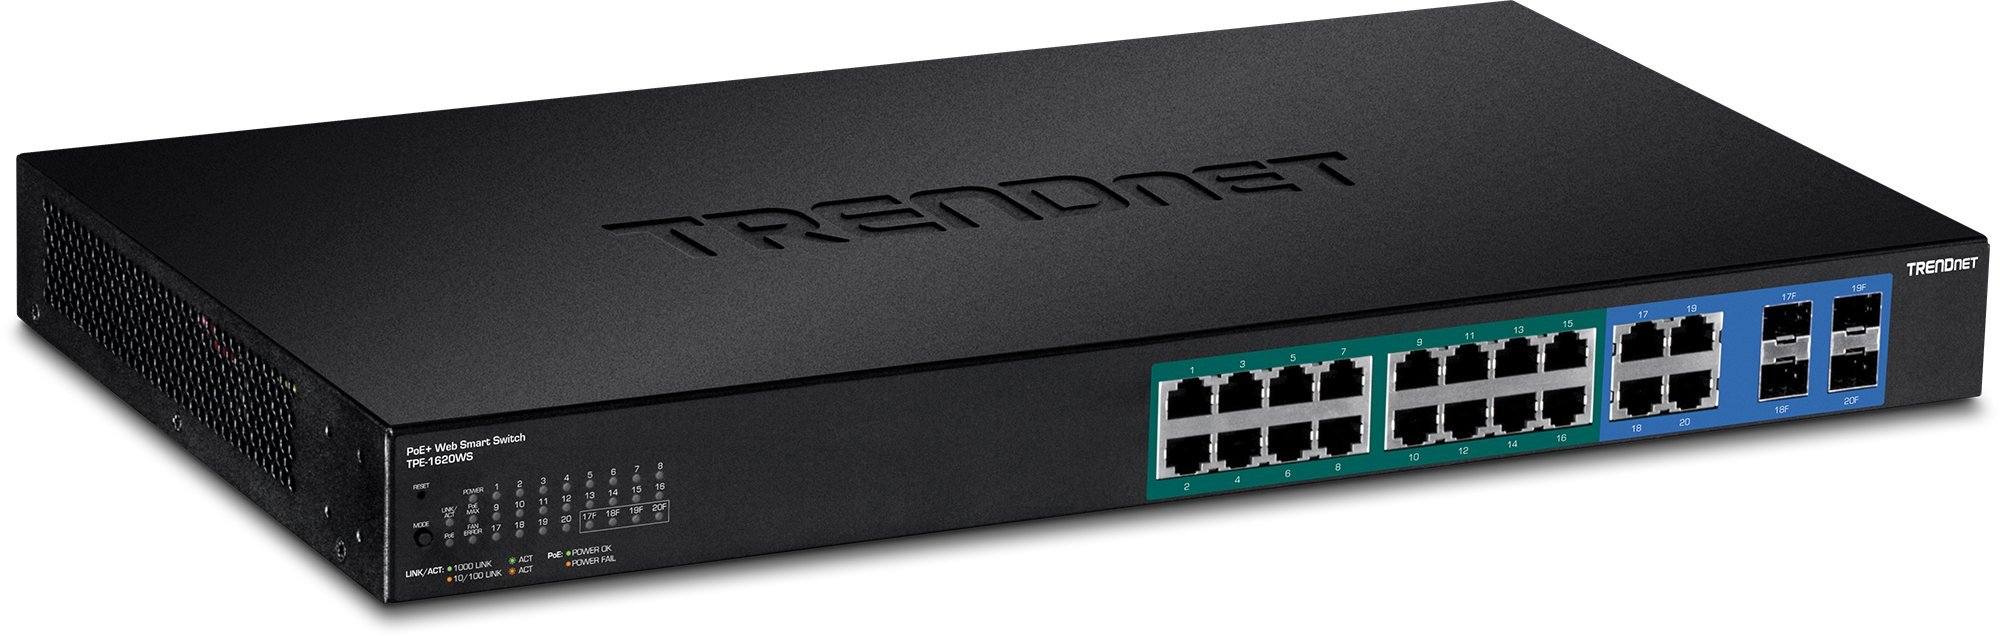 Trendnet 16-Port Gigabit Web Smart PoE+ Switch, 16 x Gigabit PoE+ Ports, 4 x Shared Gigabit Ports (RJ-45 or SFP), VLAN, QoS, LACP, IPv6 Support,185 W Power Budget, TPE-1620WS